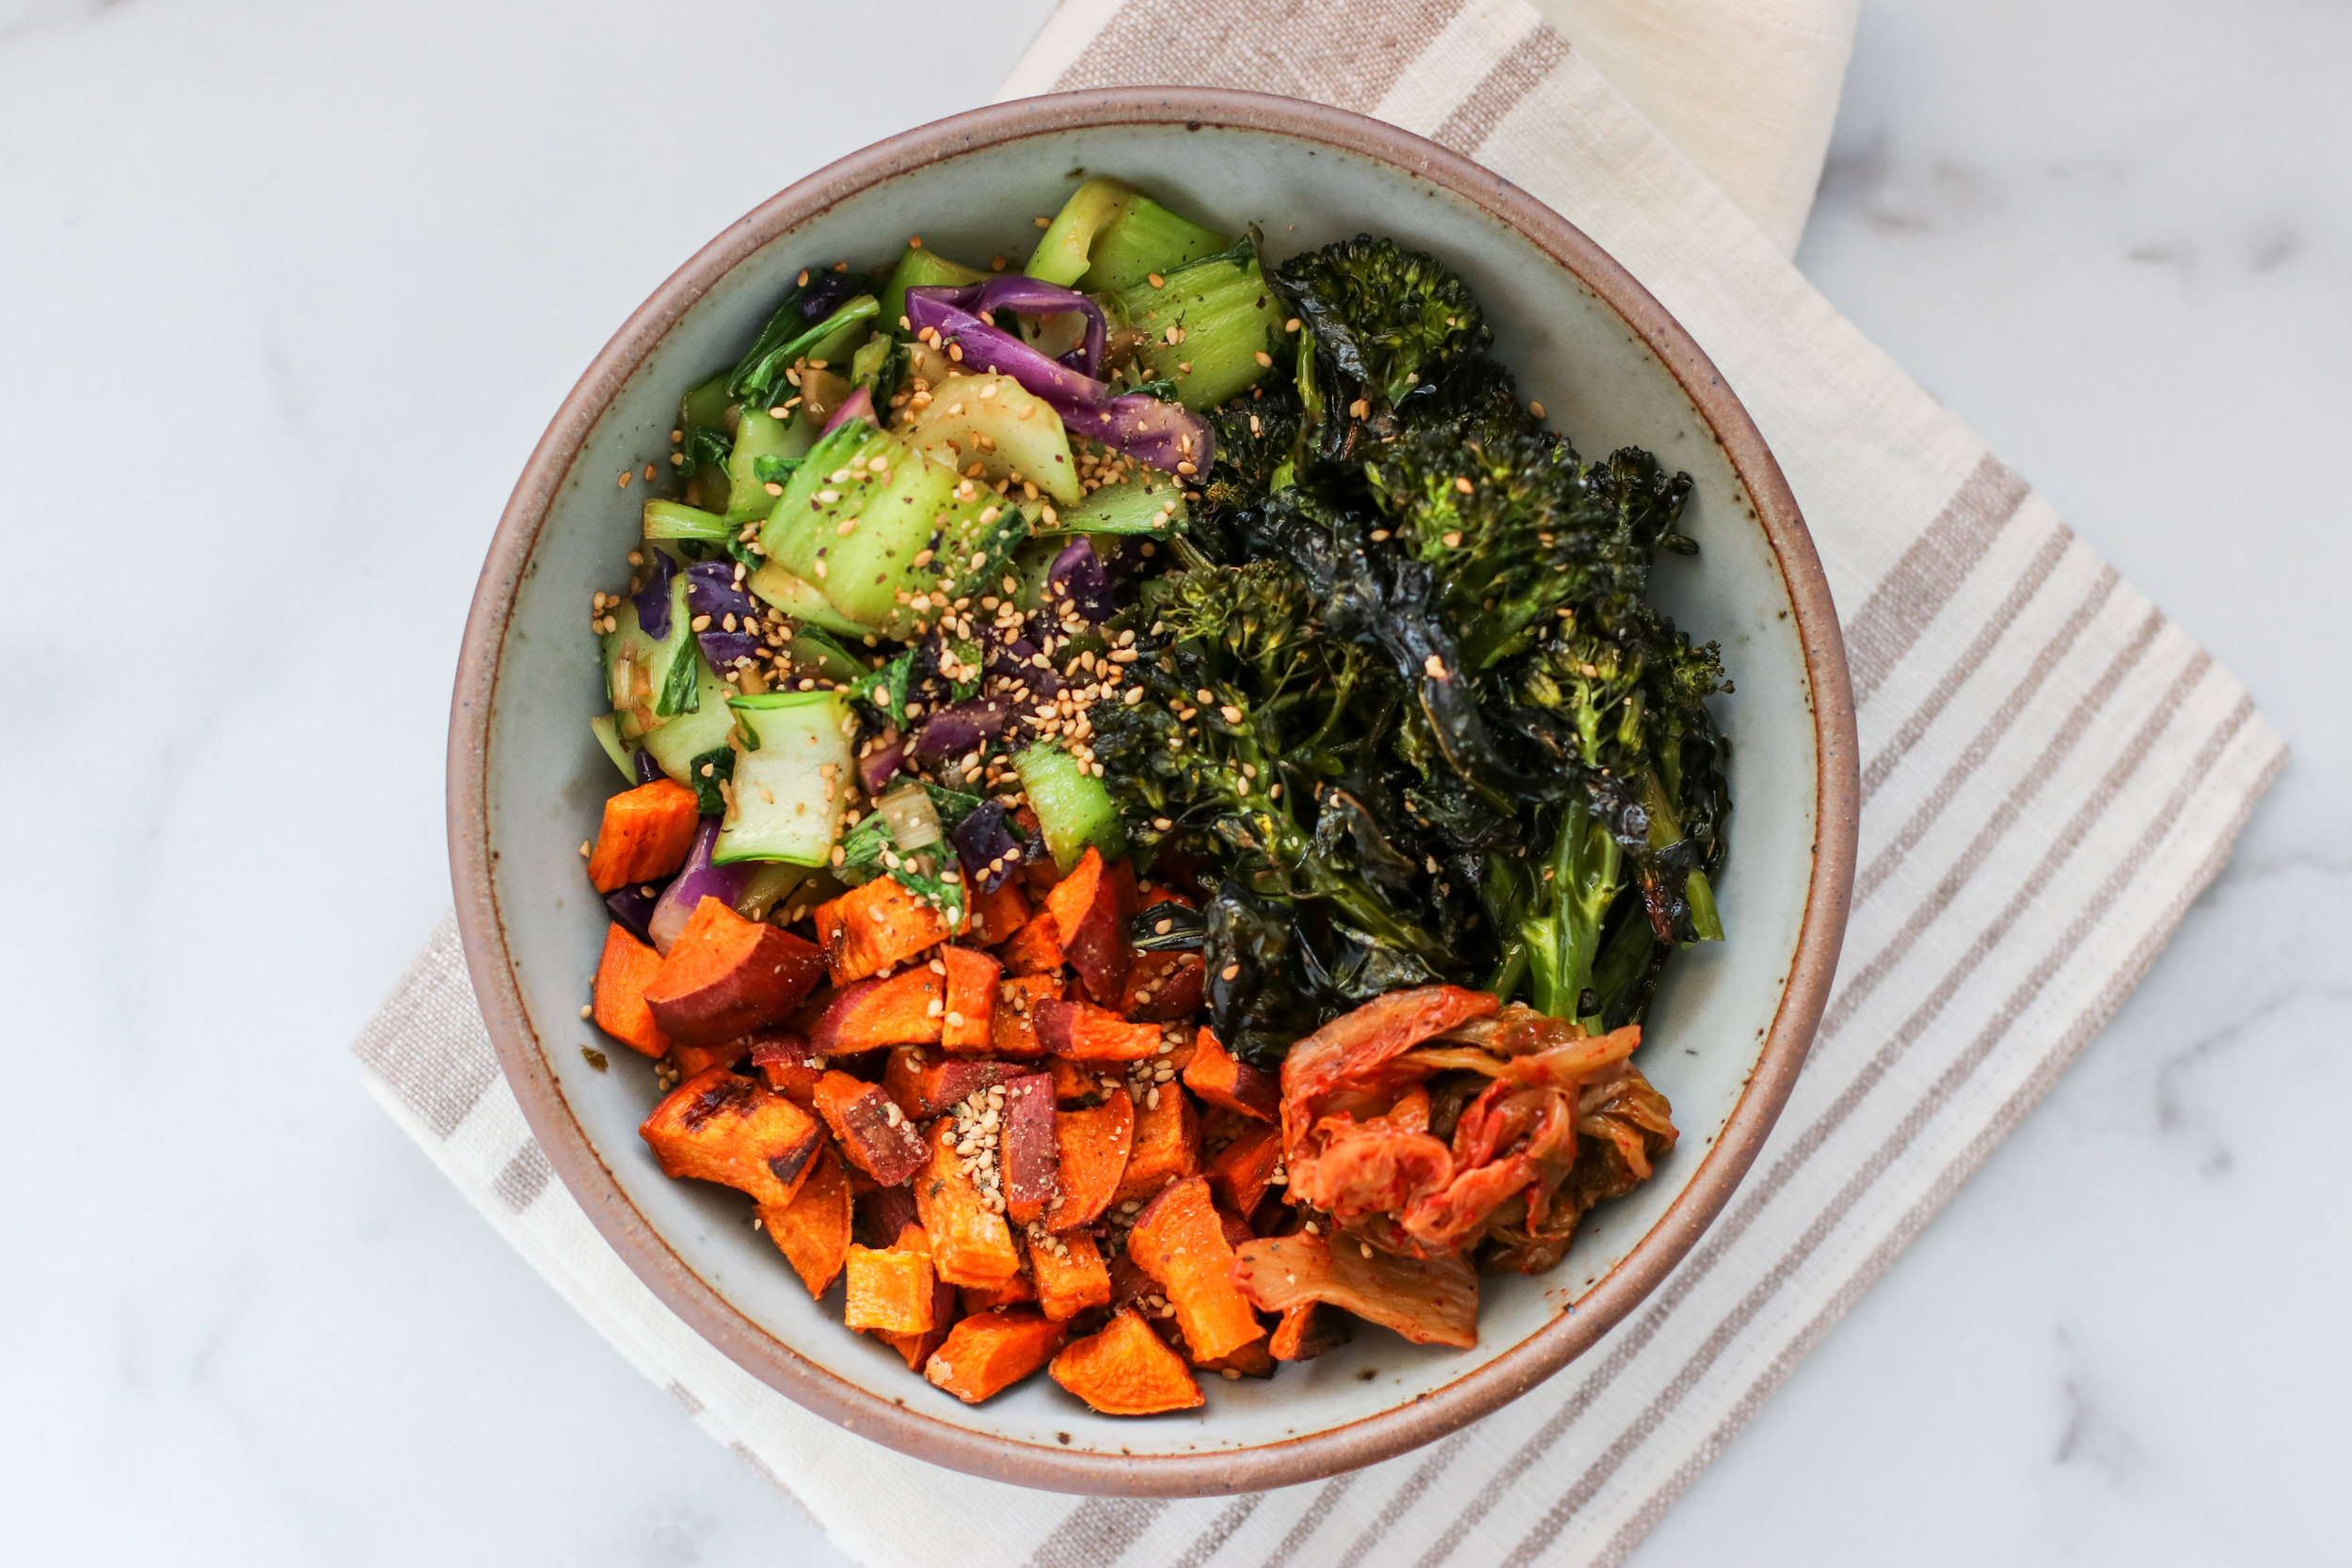 Asian Bowl with Baby Bok Choy + Red Onion, Roasted Broccolini, Roasted Sweet Potato, and Kimchi